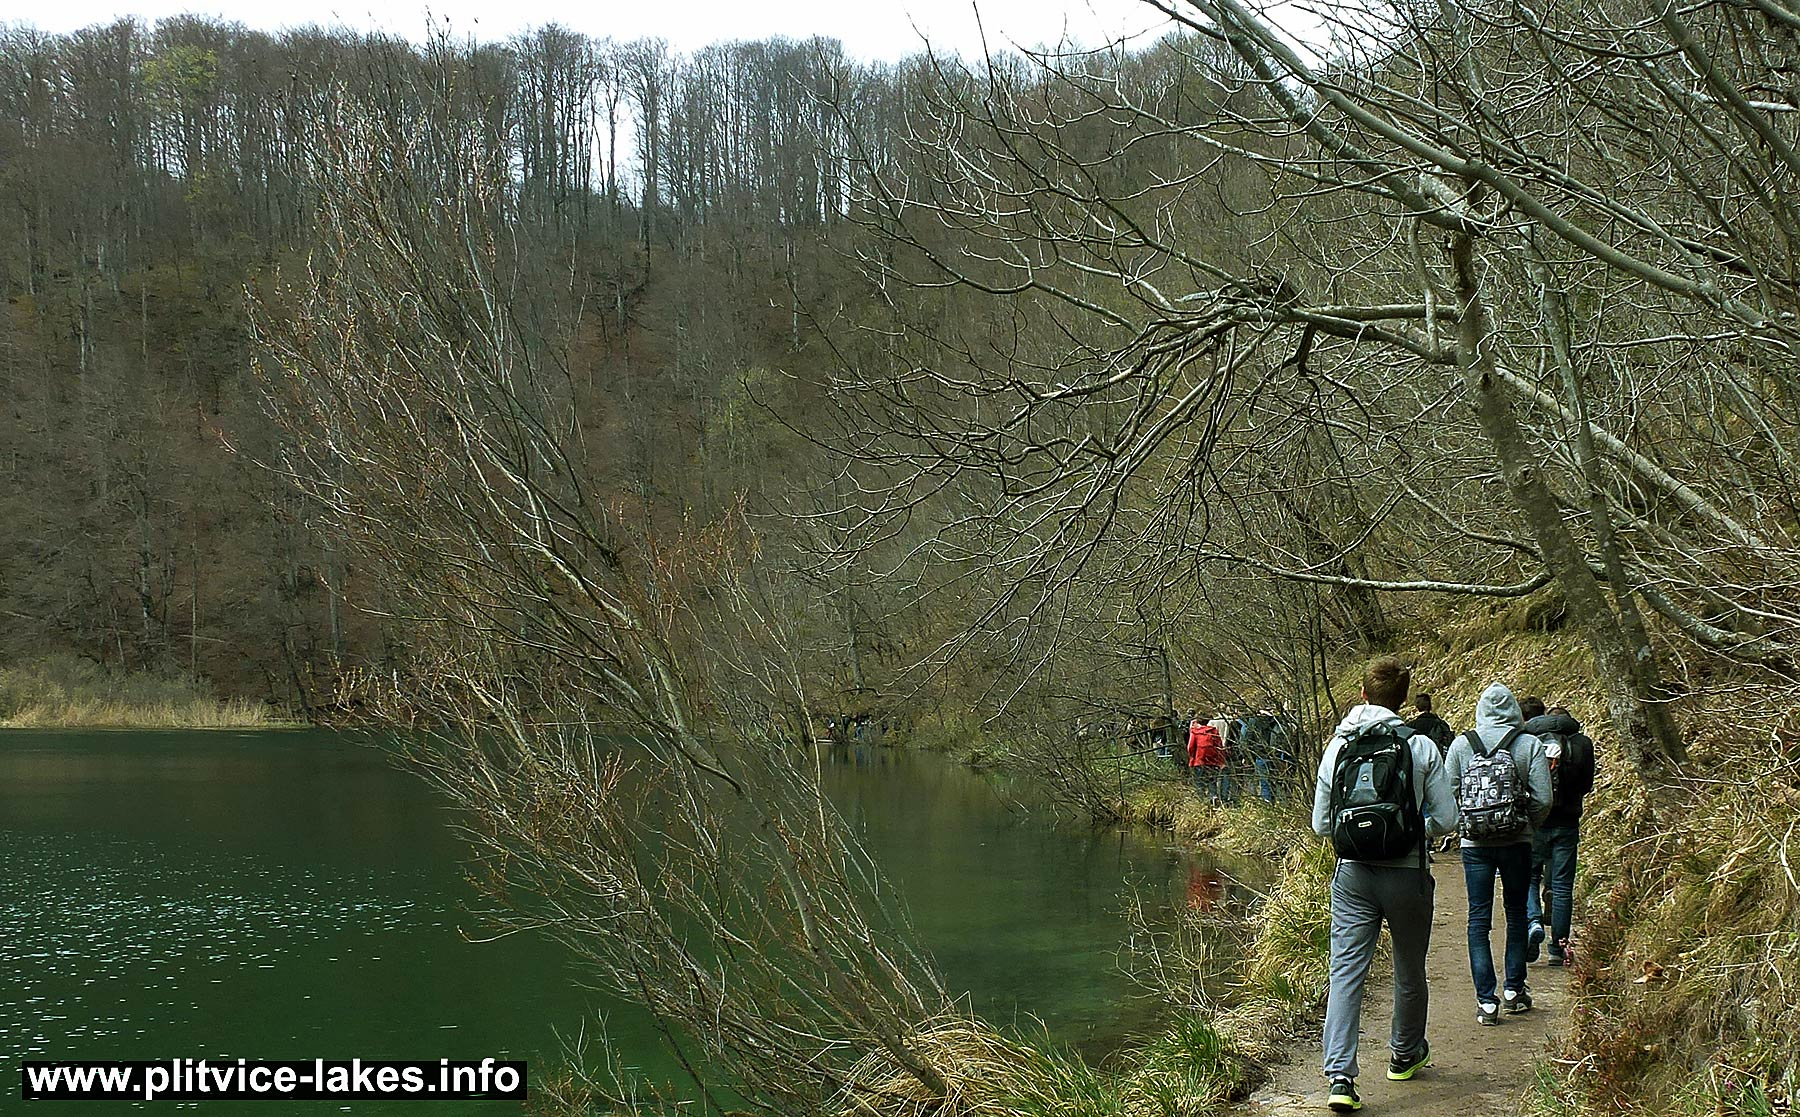 Hiking along peaceful Lake @ Plitvice